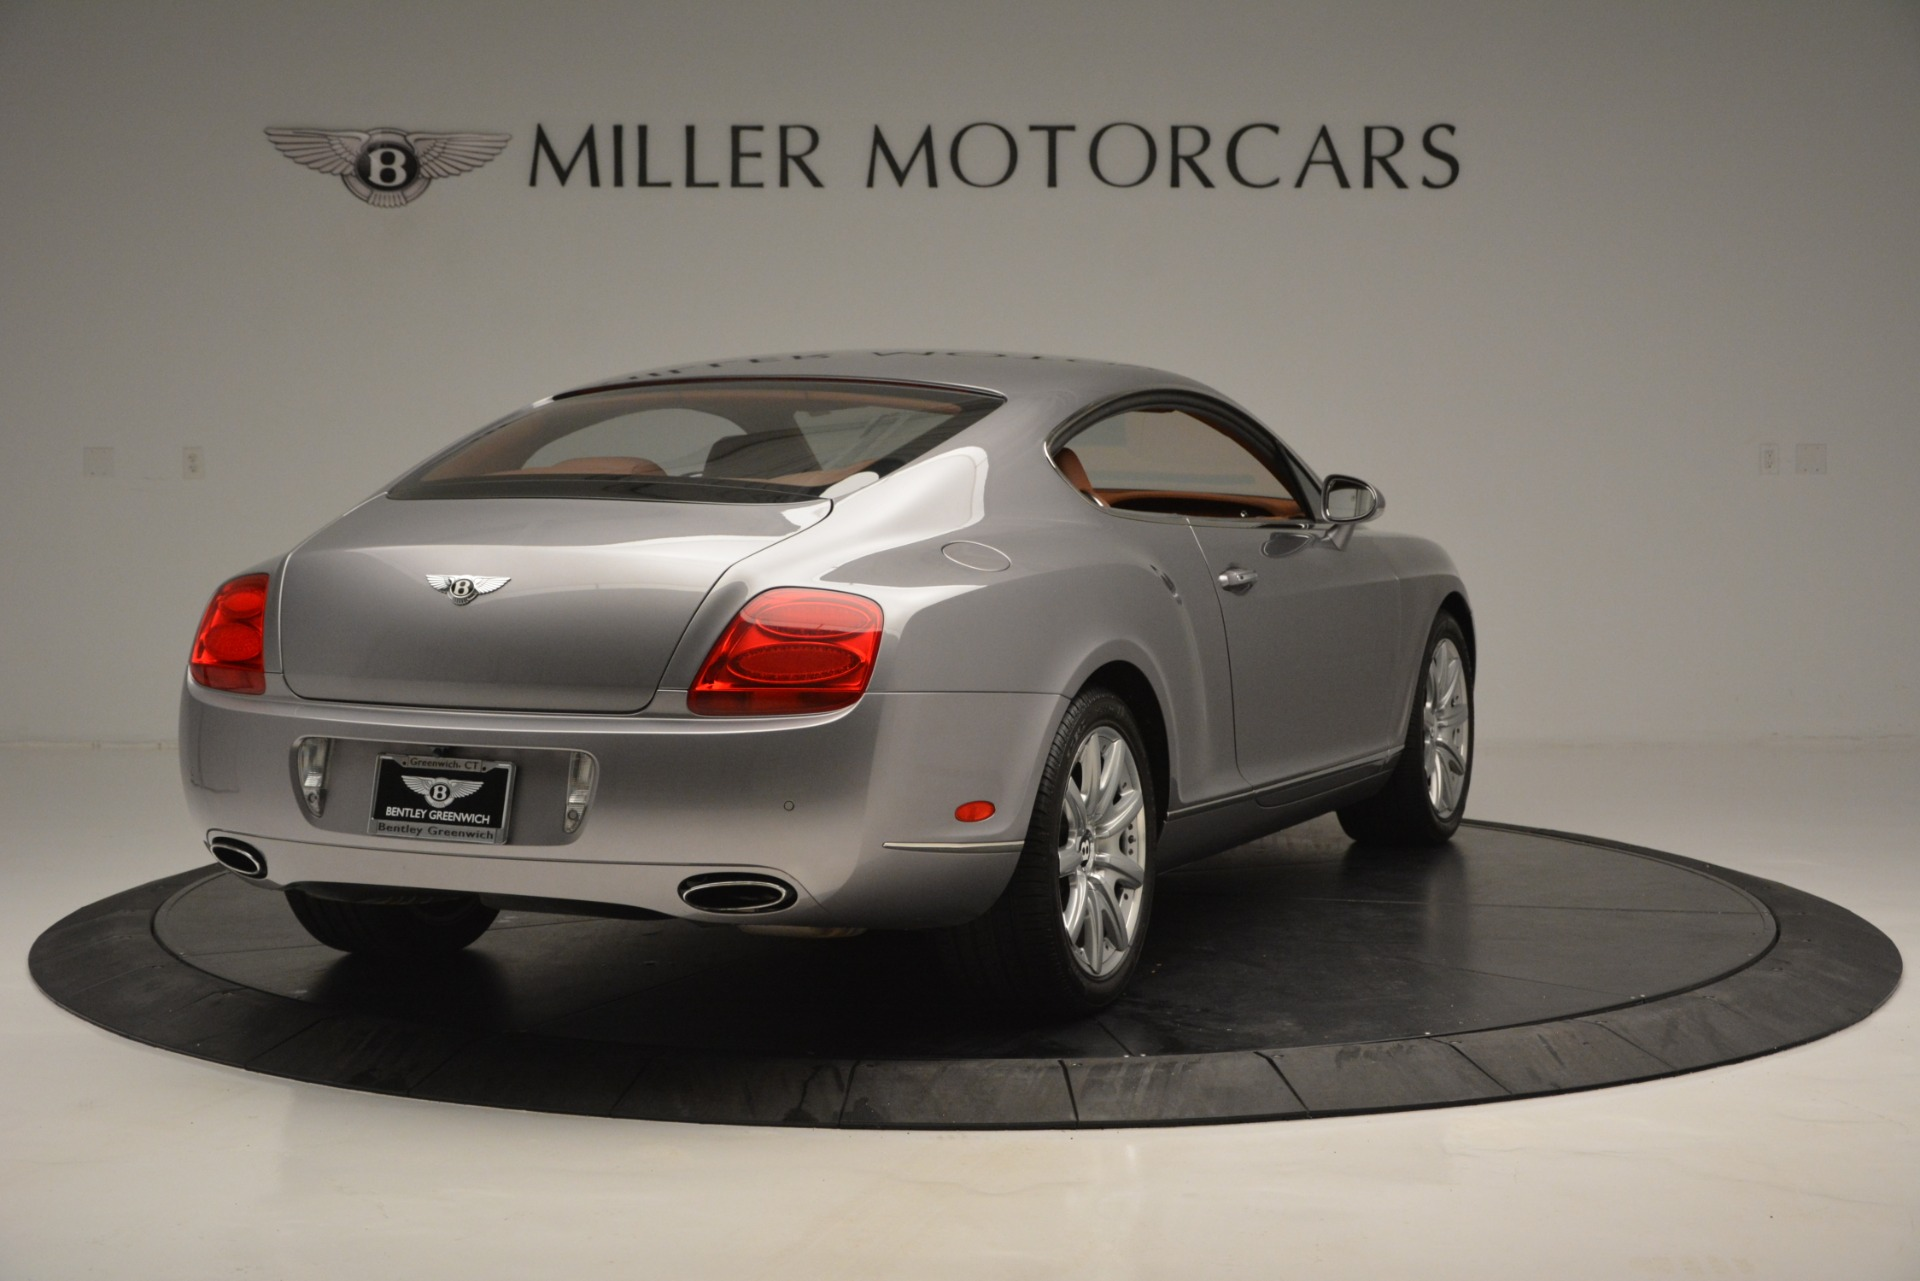 Used 2005 Bentley Continental GT GT Turbo For Sale In Westport, CT 2726_p7